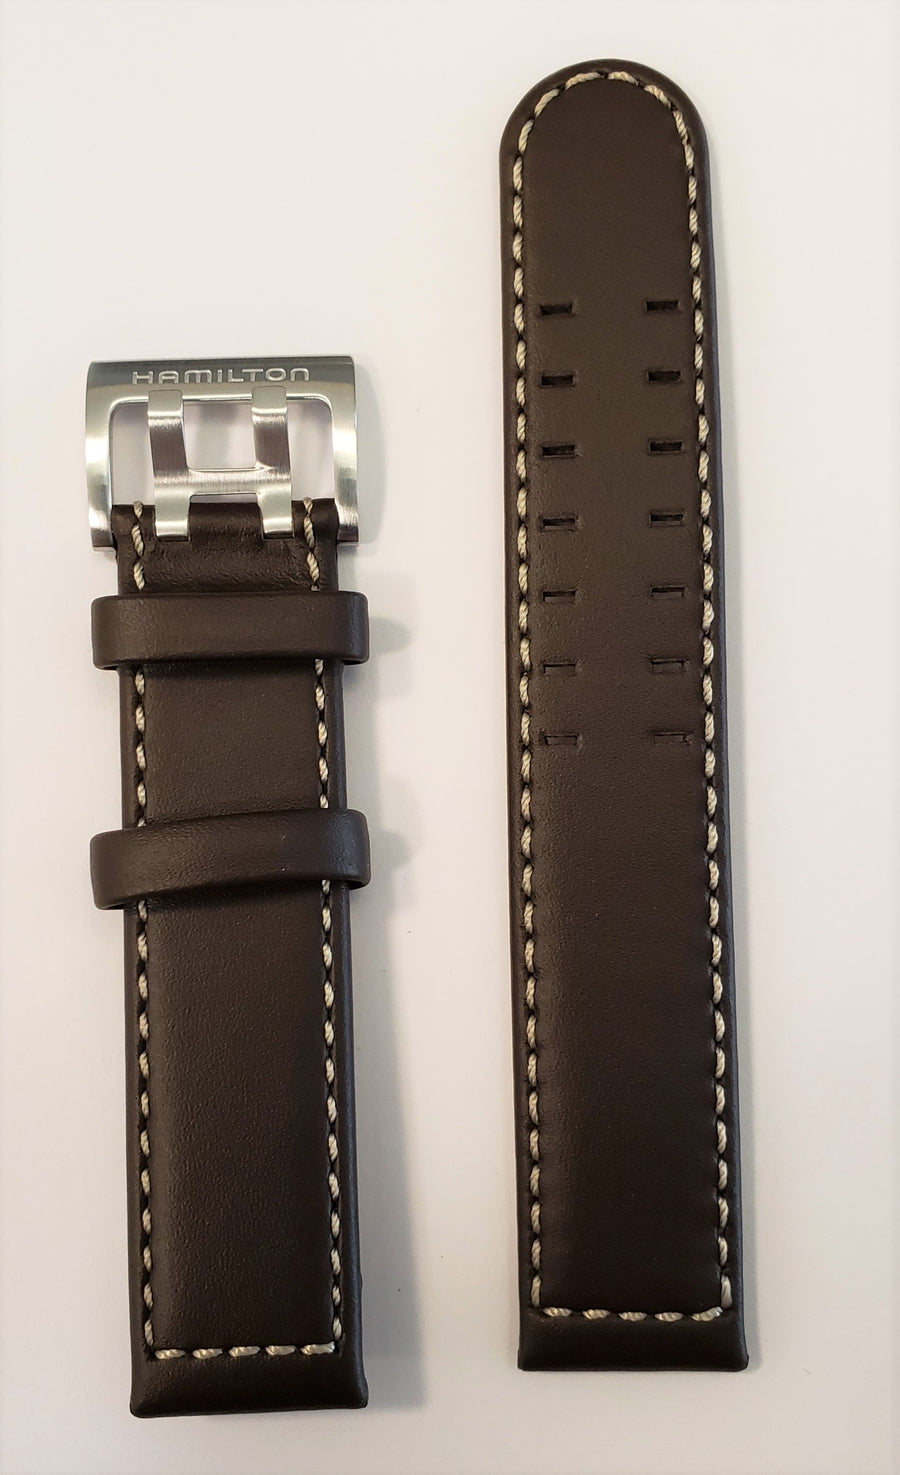 Hamilton Khaki Pilot 20mm Brown Leather Watch Band - WATCHBAND EXPERT